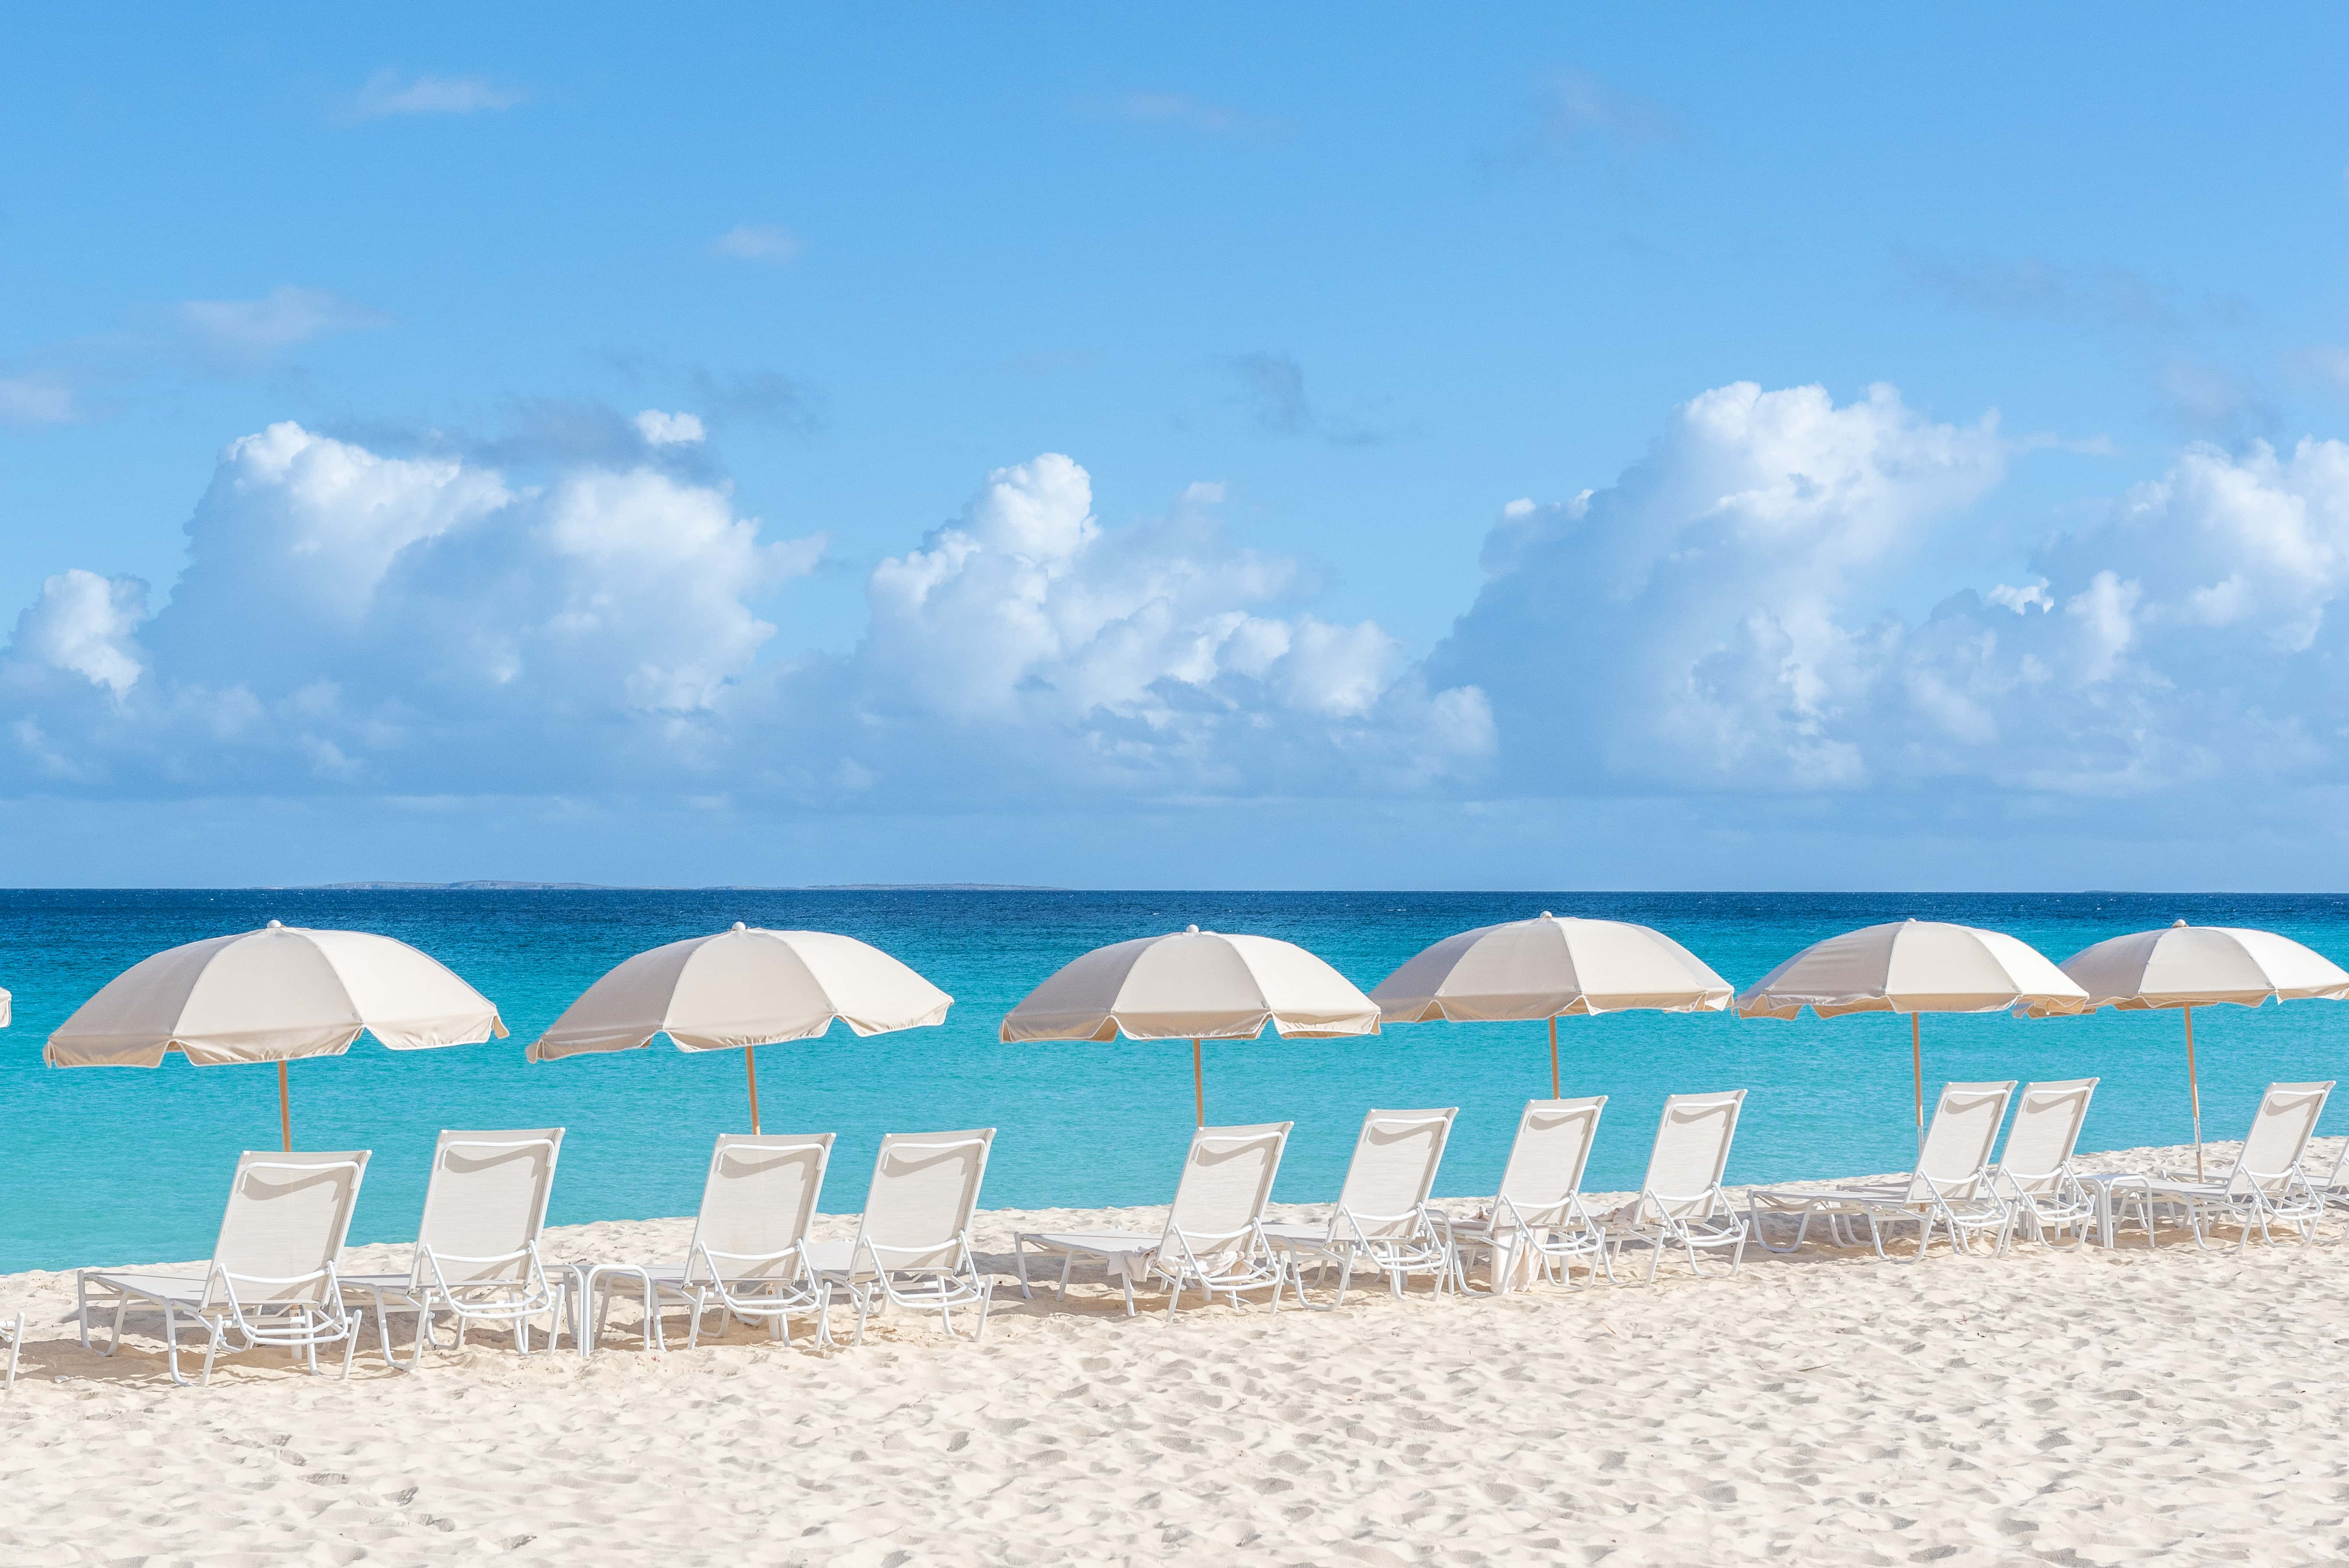 Mead's Bay, Carimar Beach Club, Anguilla by Patrick Bennett